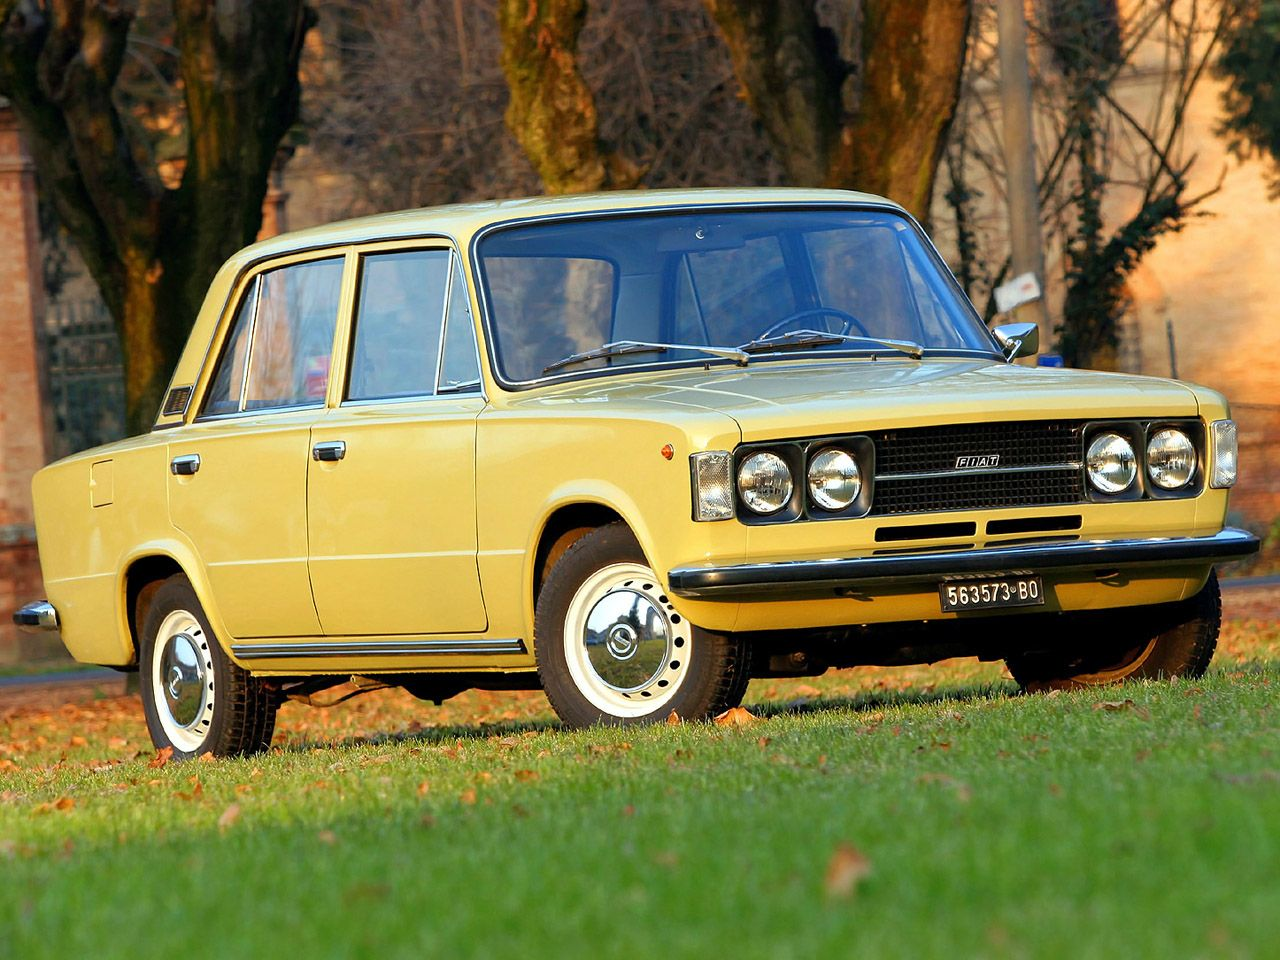 fiat 124 t yellow car yellow cars pinterest fiat cars and fiat abarth. Black Bedroom Furniture Sets. Home Design Ideas